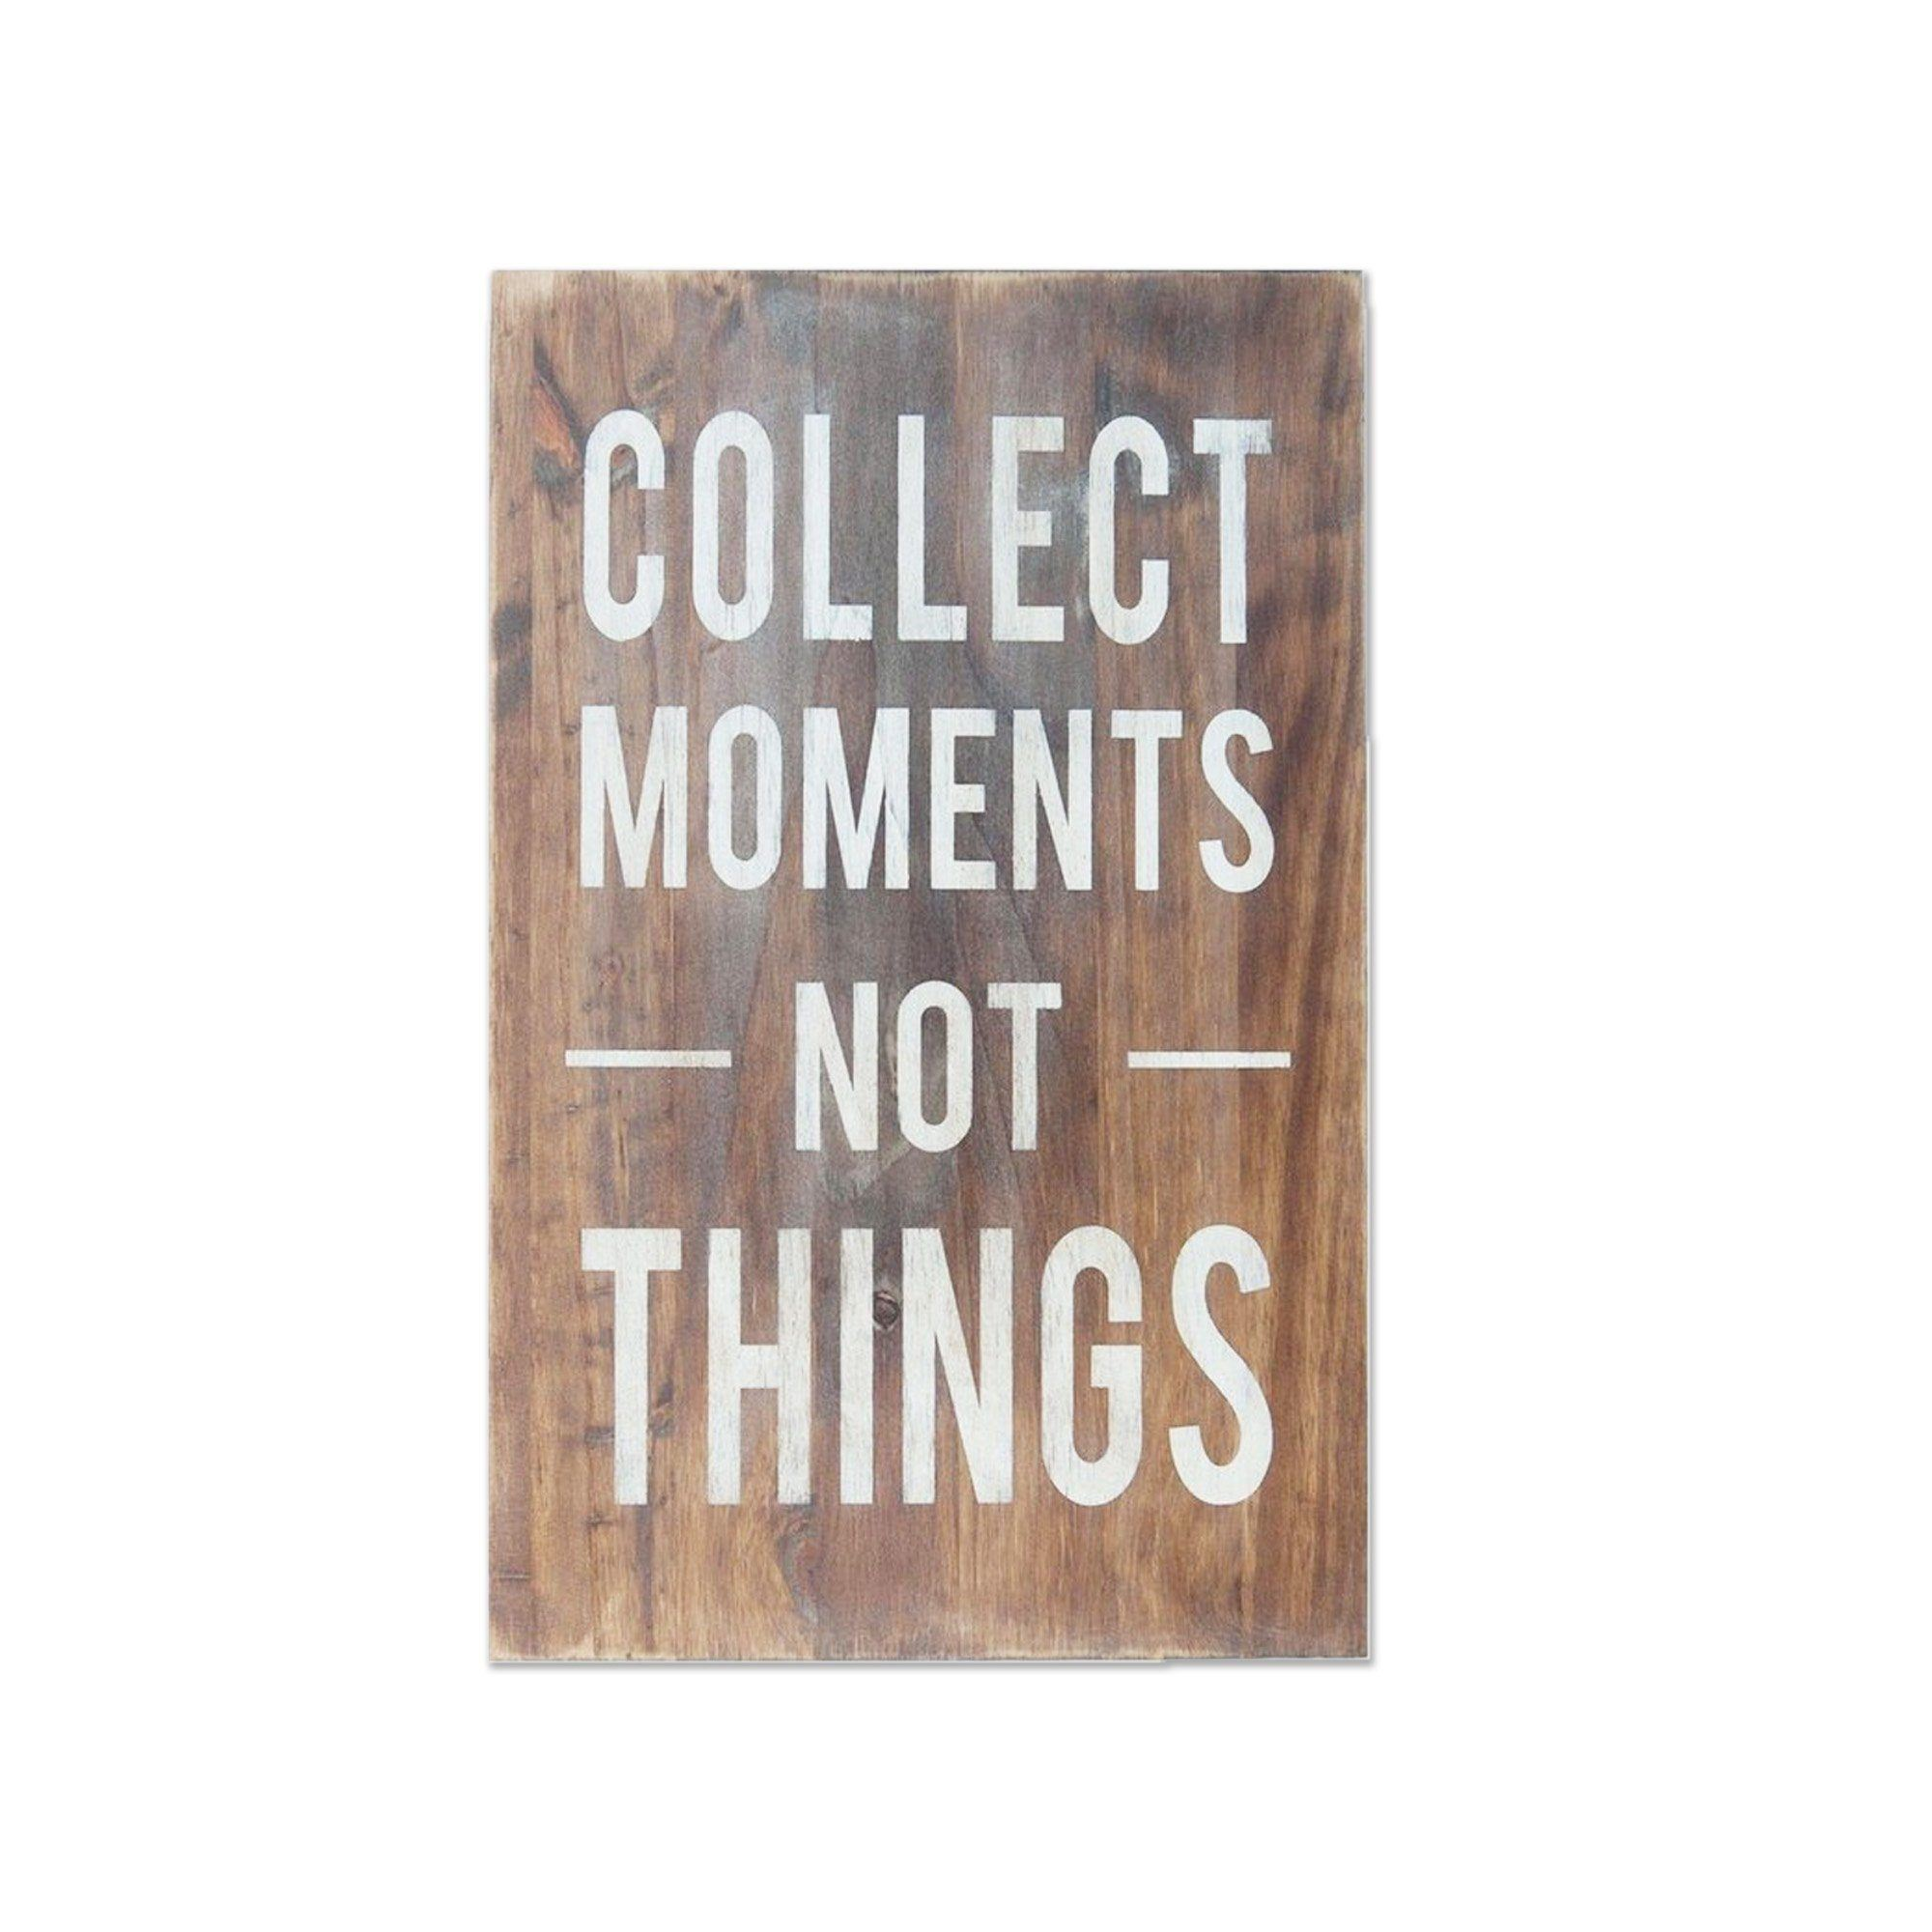 collect moments not things wooden sign by barn owl primitives barn